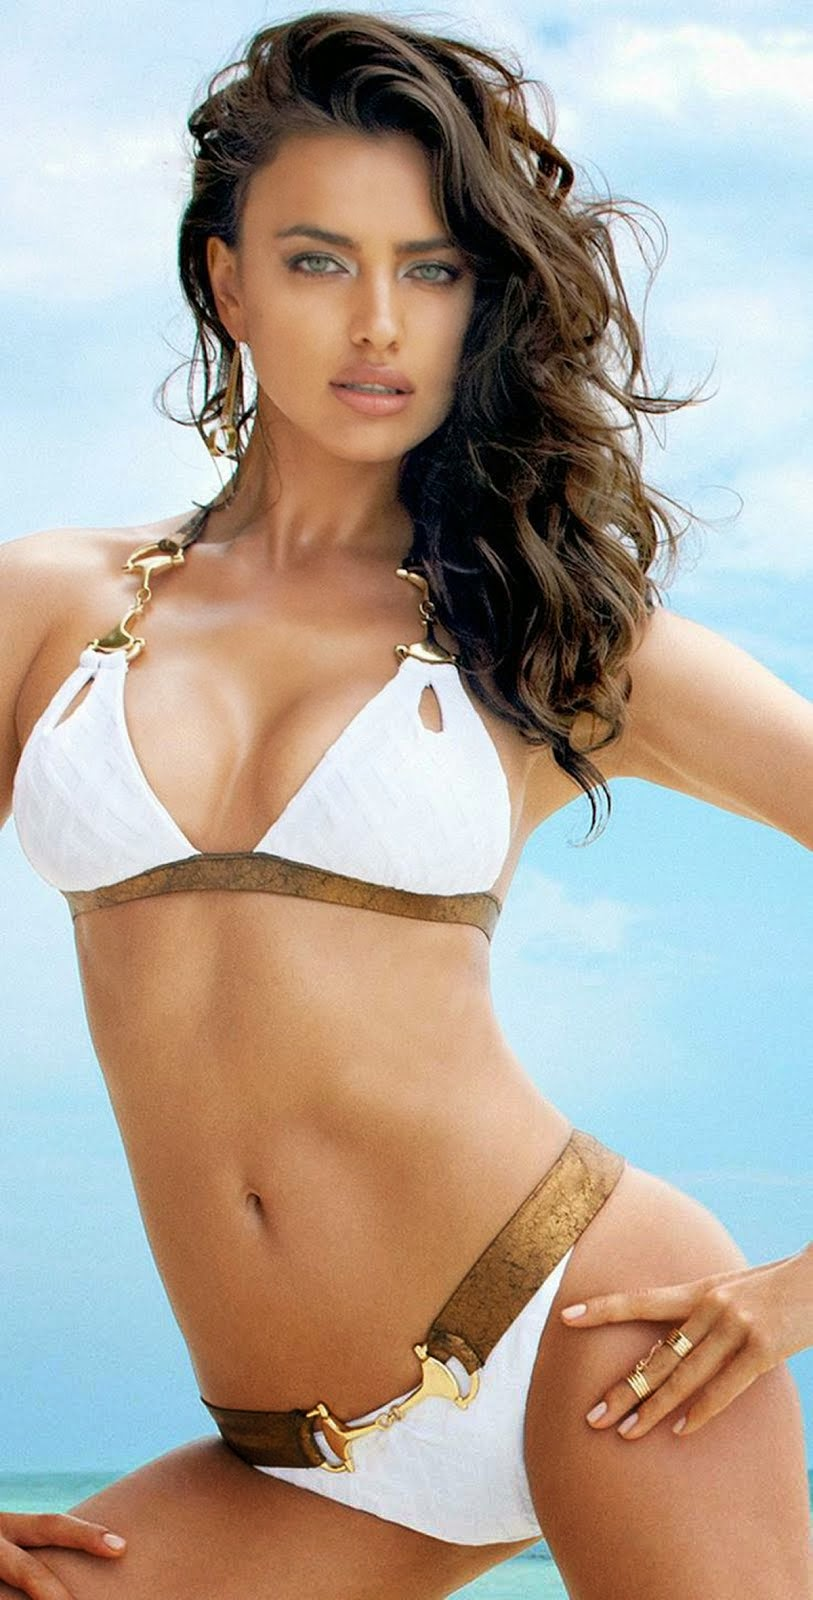 WONDERFUL TOP 50 HOT BIKINIS OF 2014